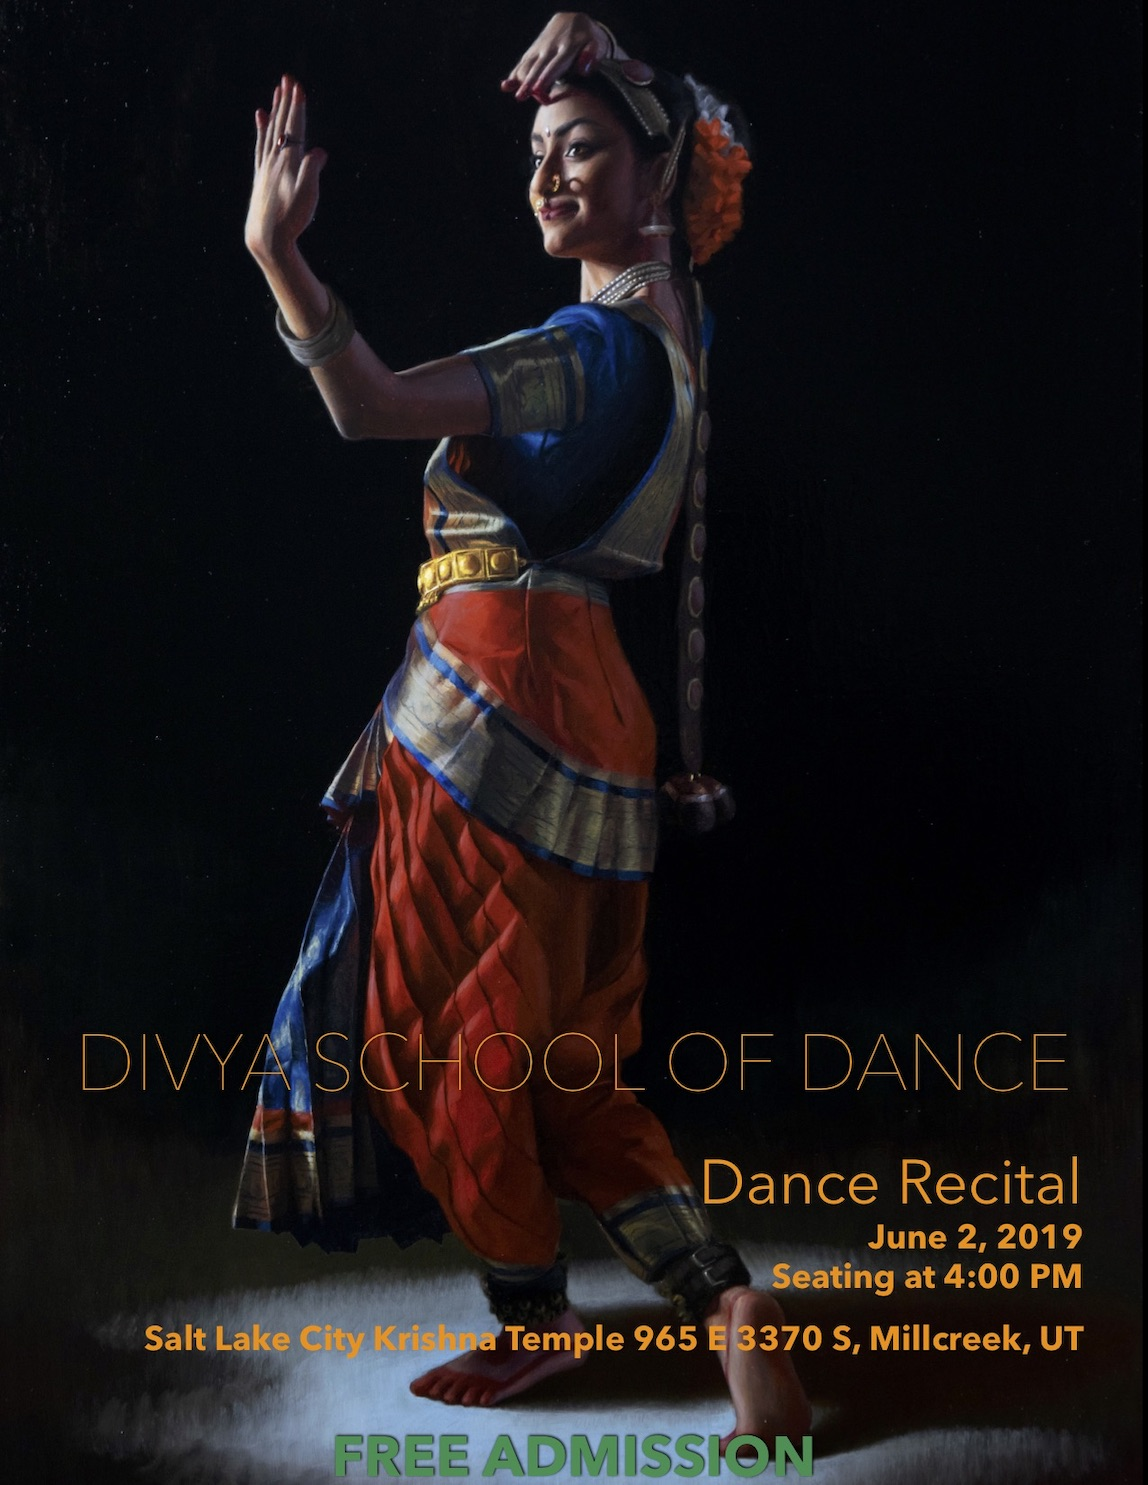 Divya School Of Dance